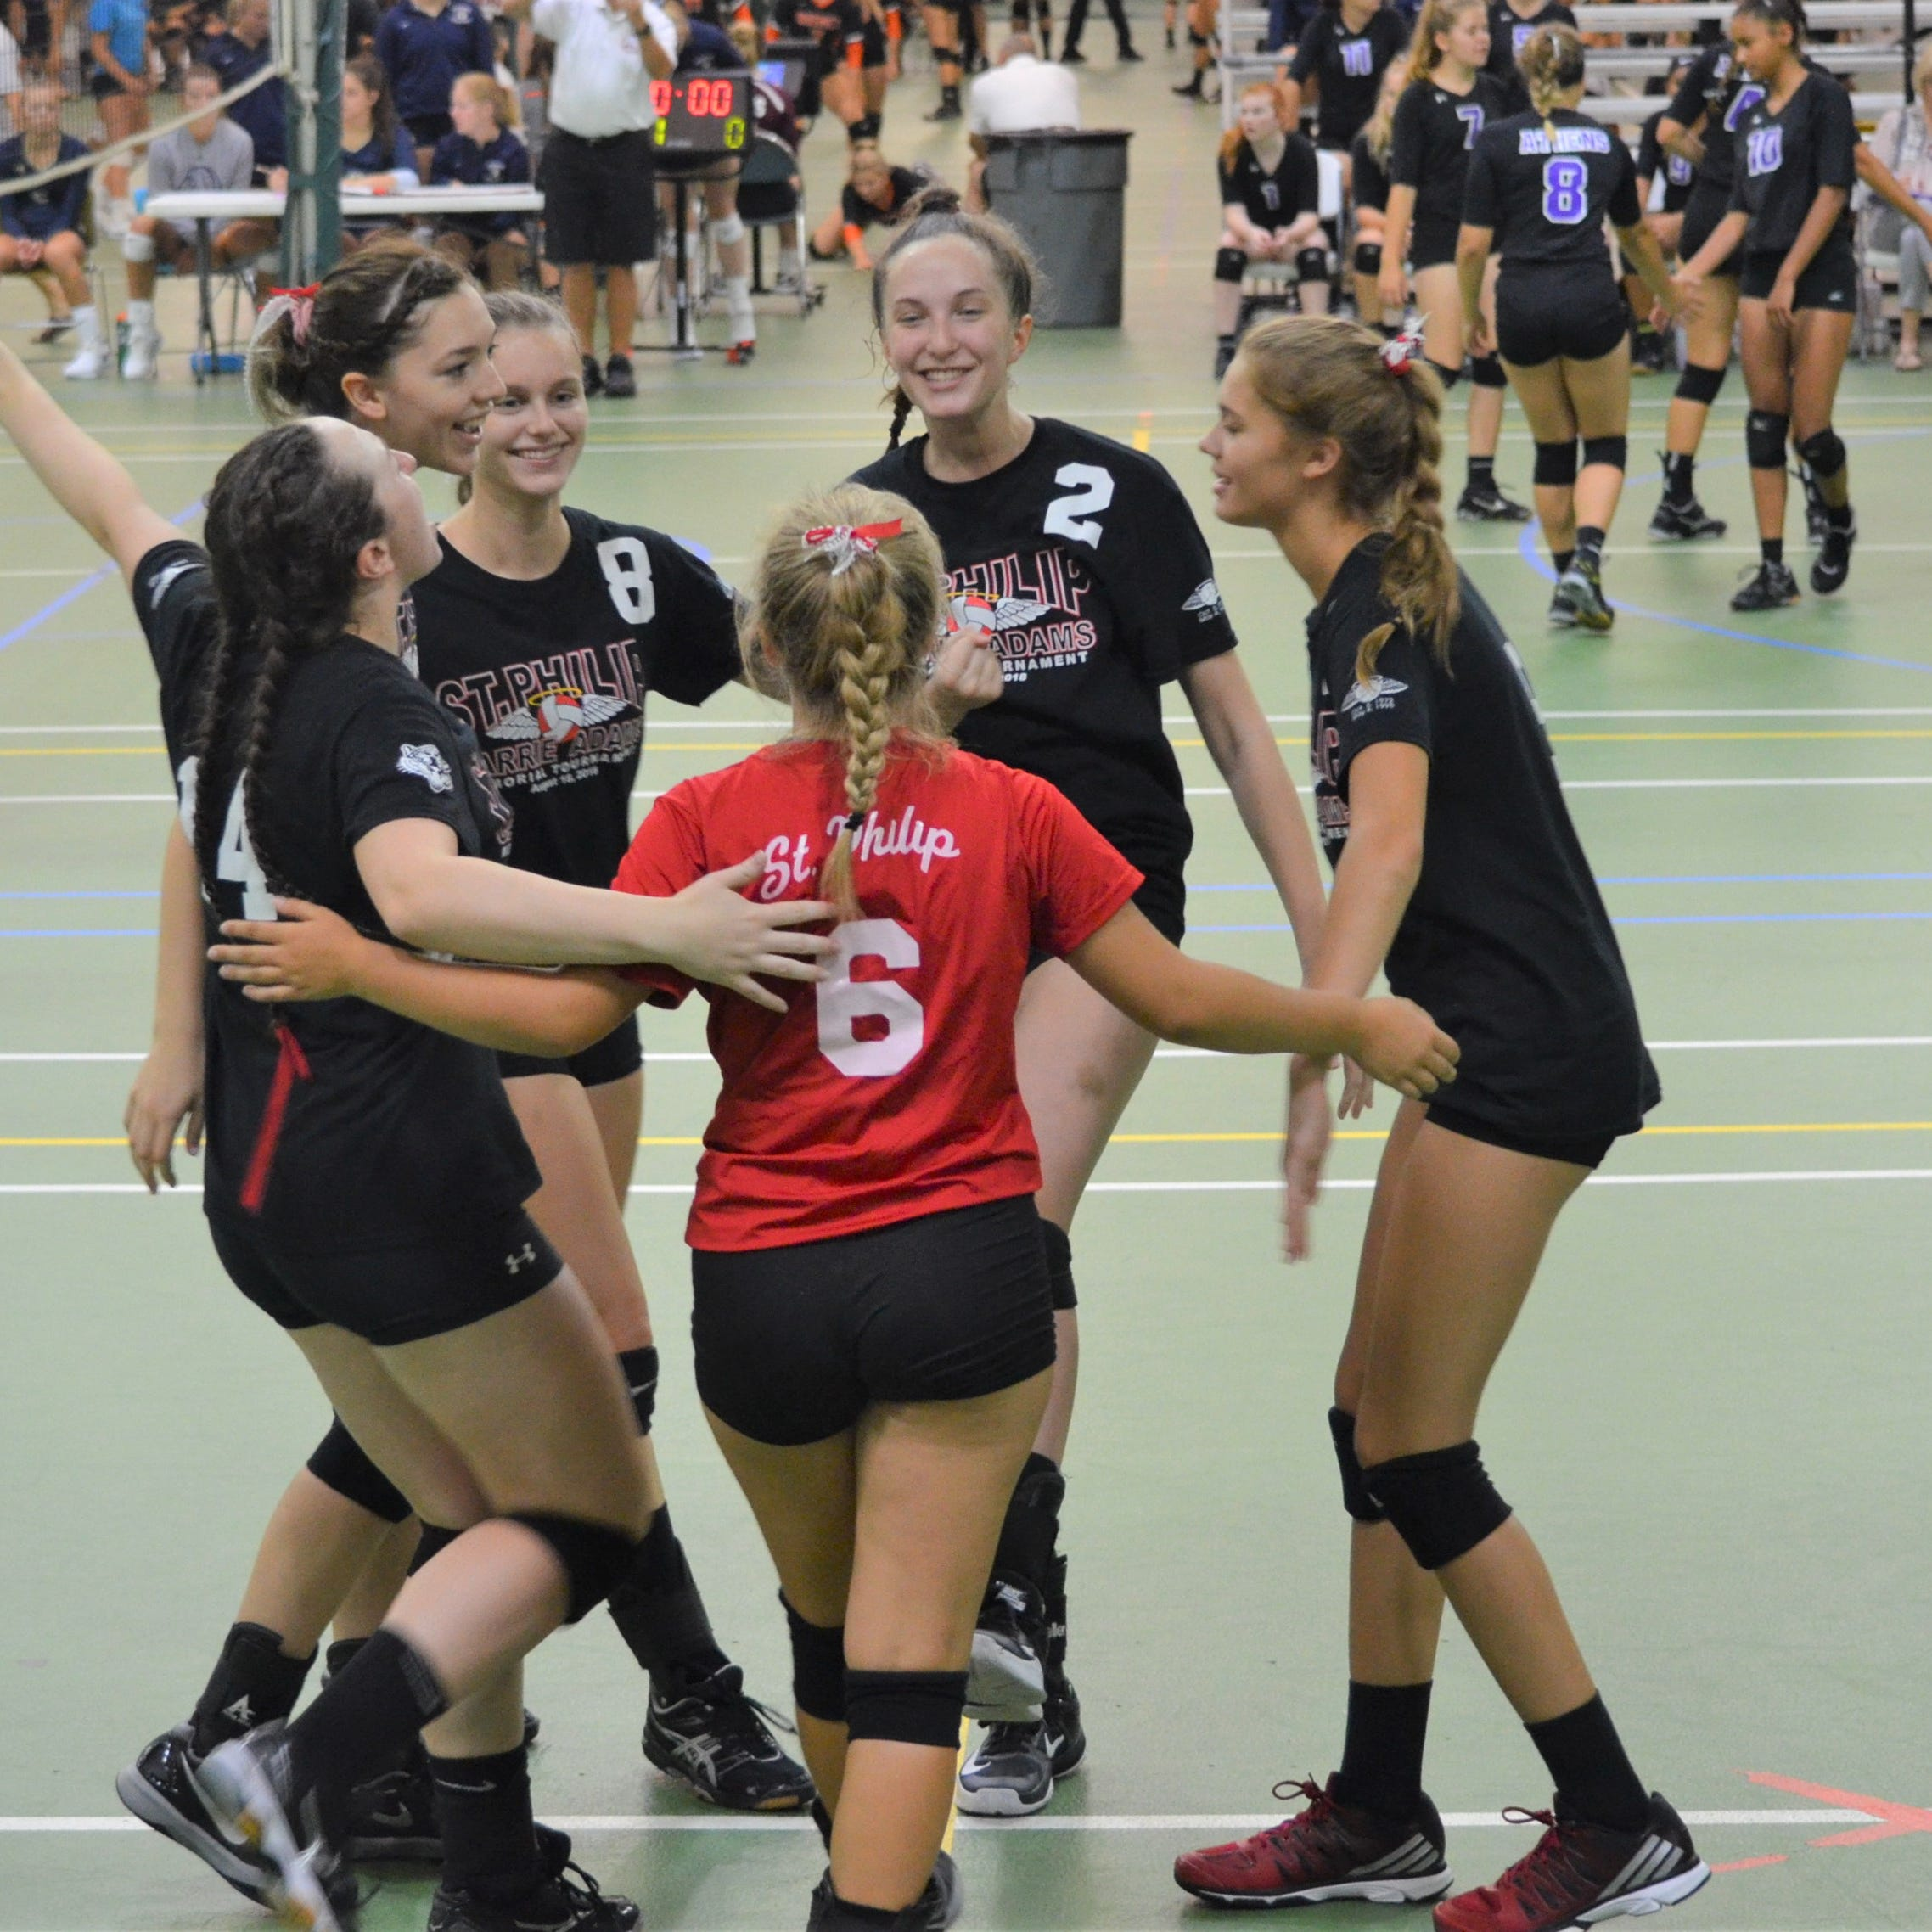 2018 Volleyball: Can Battle Creek area continue its tradition of being a state power